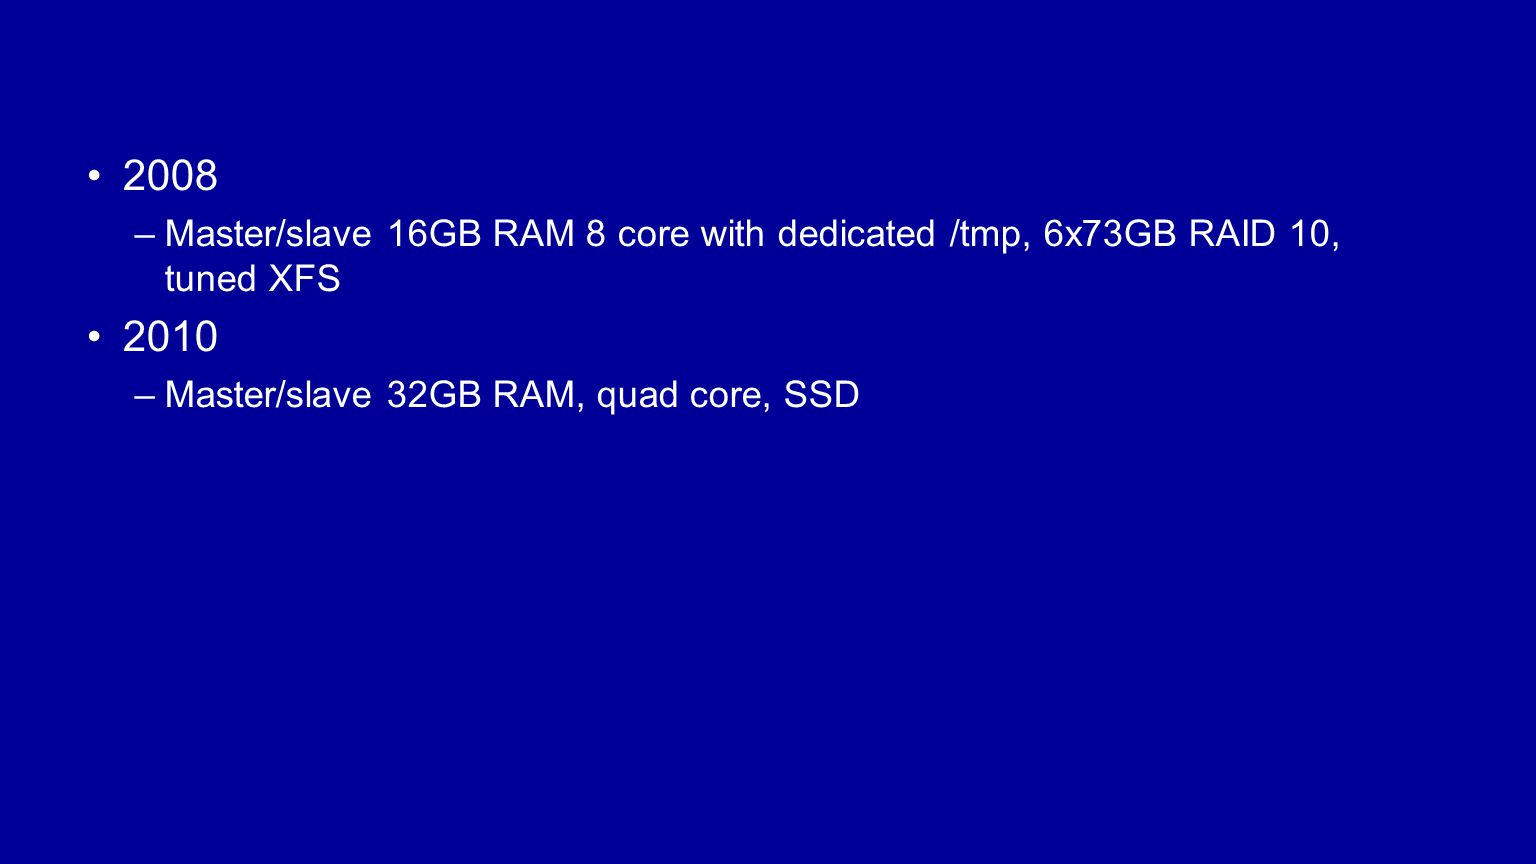 2008 –Master/slave 16GB RAM 8 core with dedicated /tmp, 6x73GB RAID 10, tuned XFS 2010 –Master/slave 32GB RAM, quad core, SSD